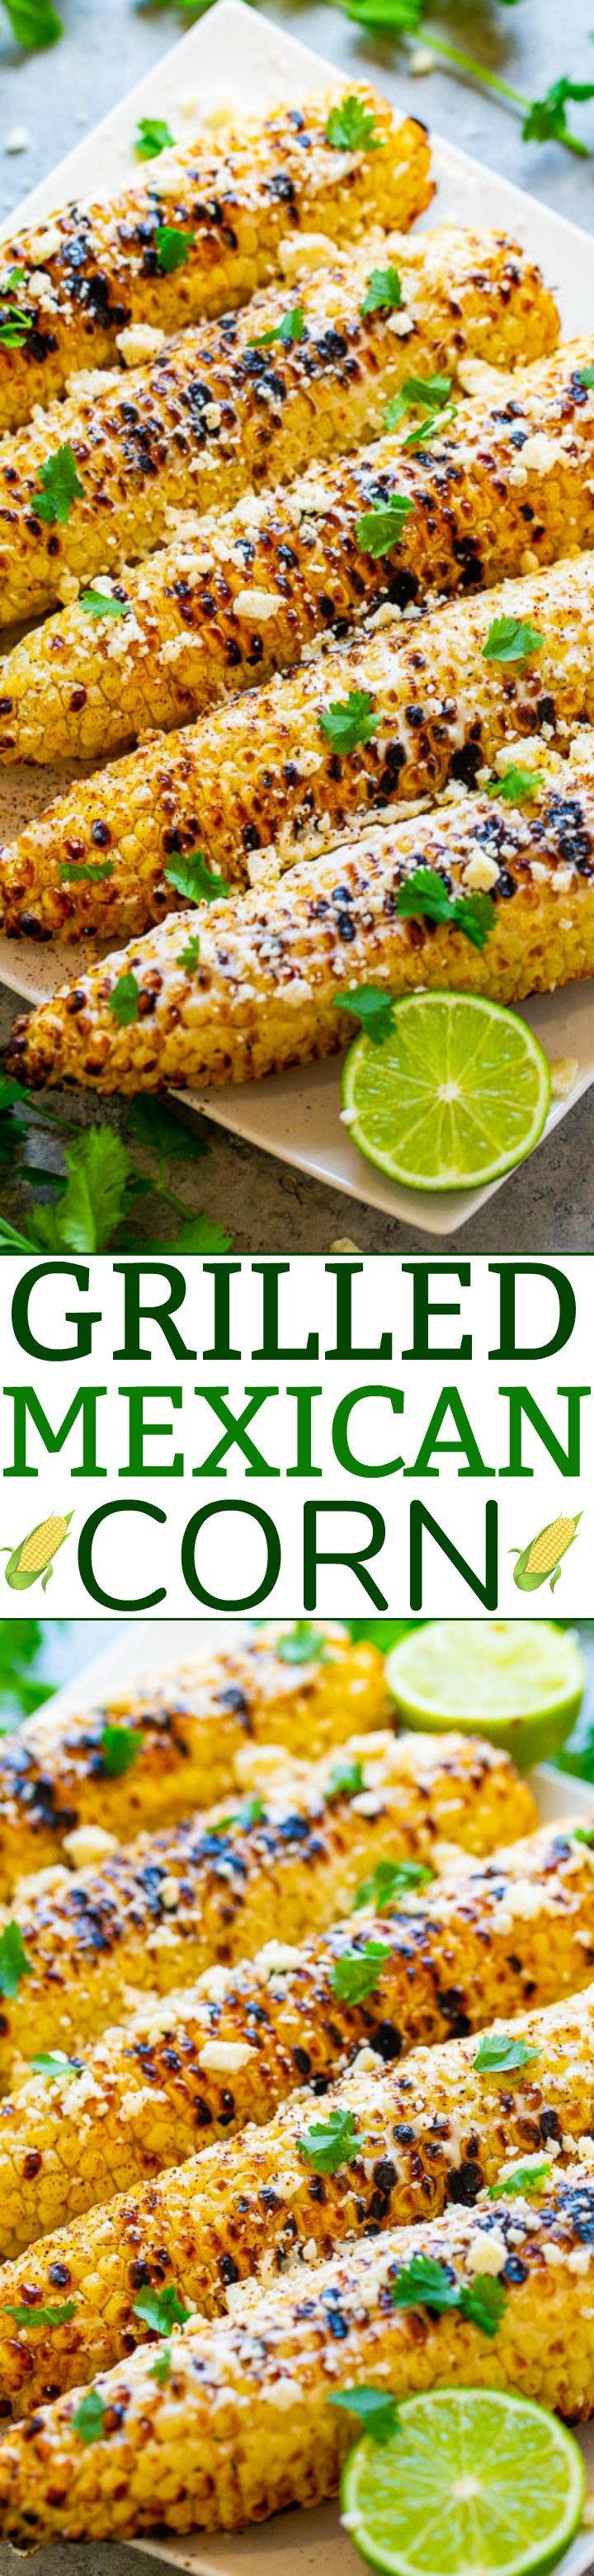 Grilled Mexican Corn (Elote) – Learn how to make this EASY and FLAVORFUL grilled Mexican street corn at home in minutes!! Fresh sweet corn is covered in crema, cheese, and finished with chili, lime juice, and cilantro!!